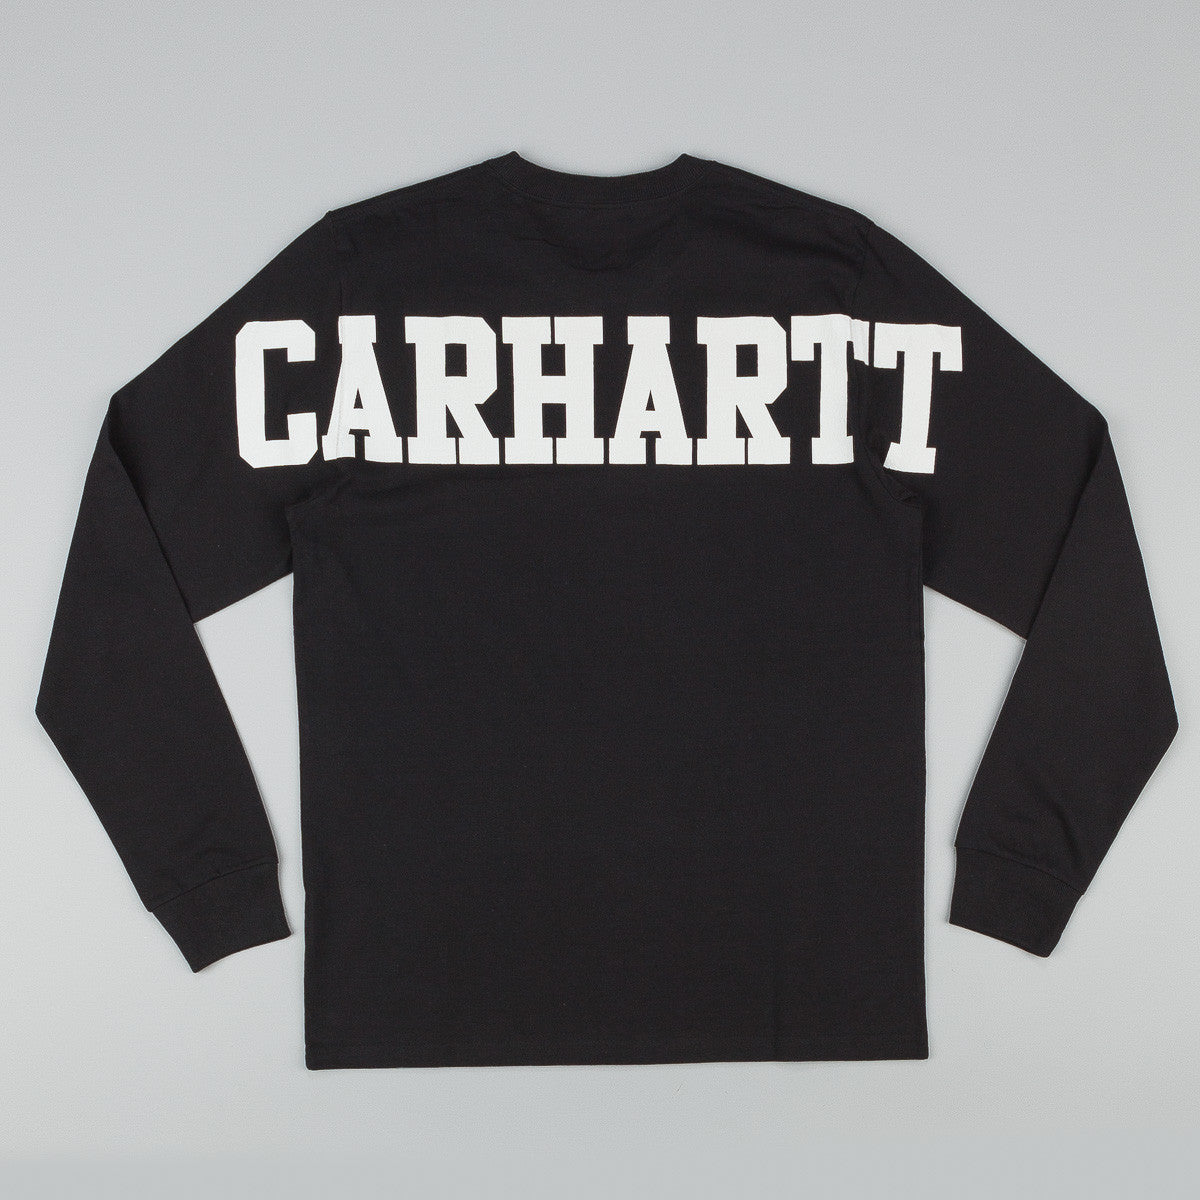 Carhartt Tony Long Sleeve T-Shirt - Black / White